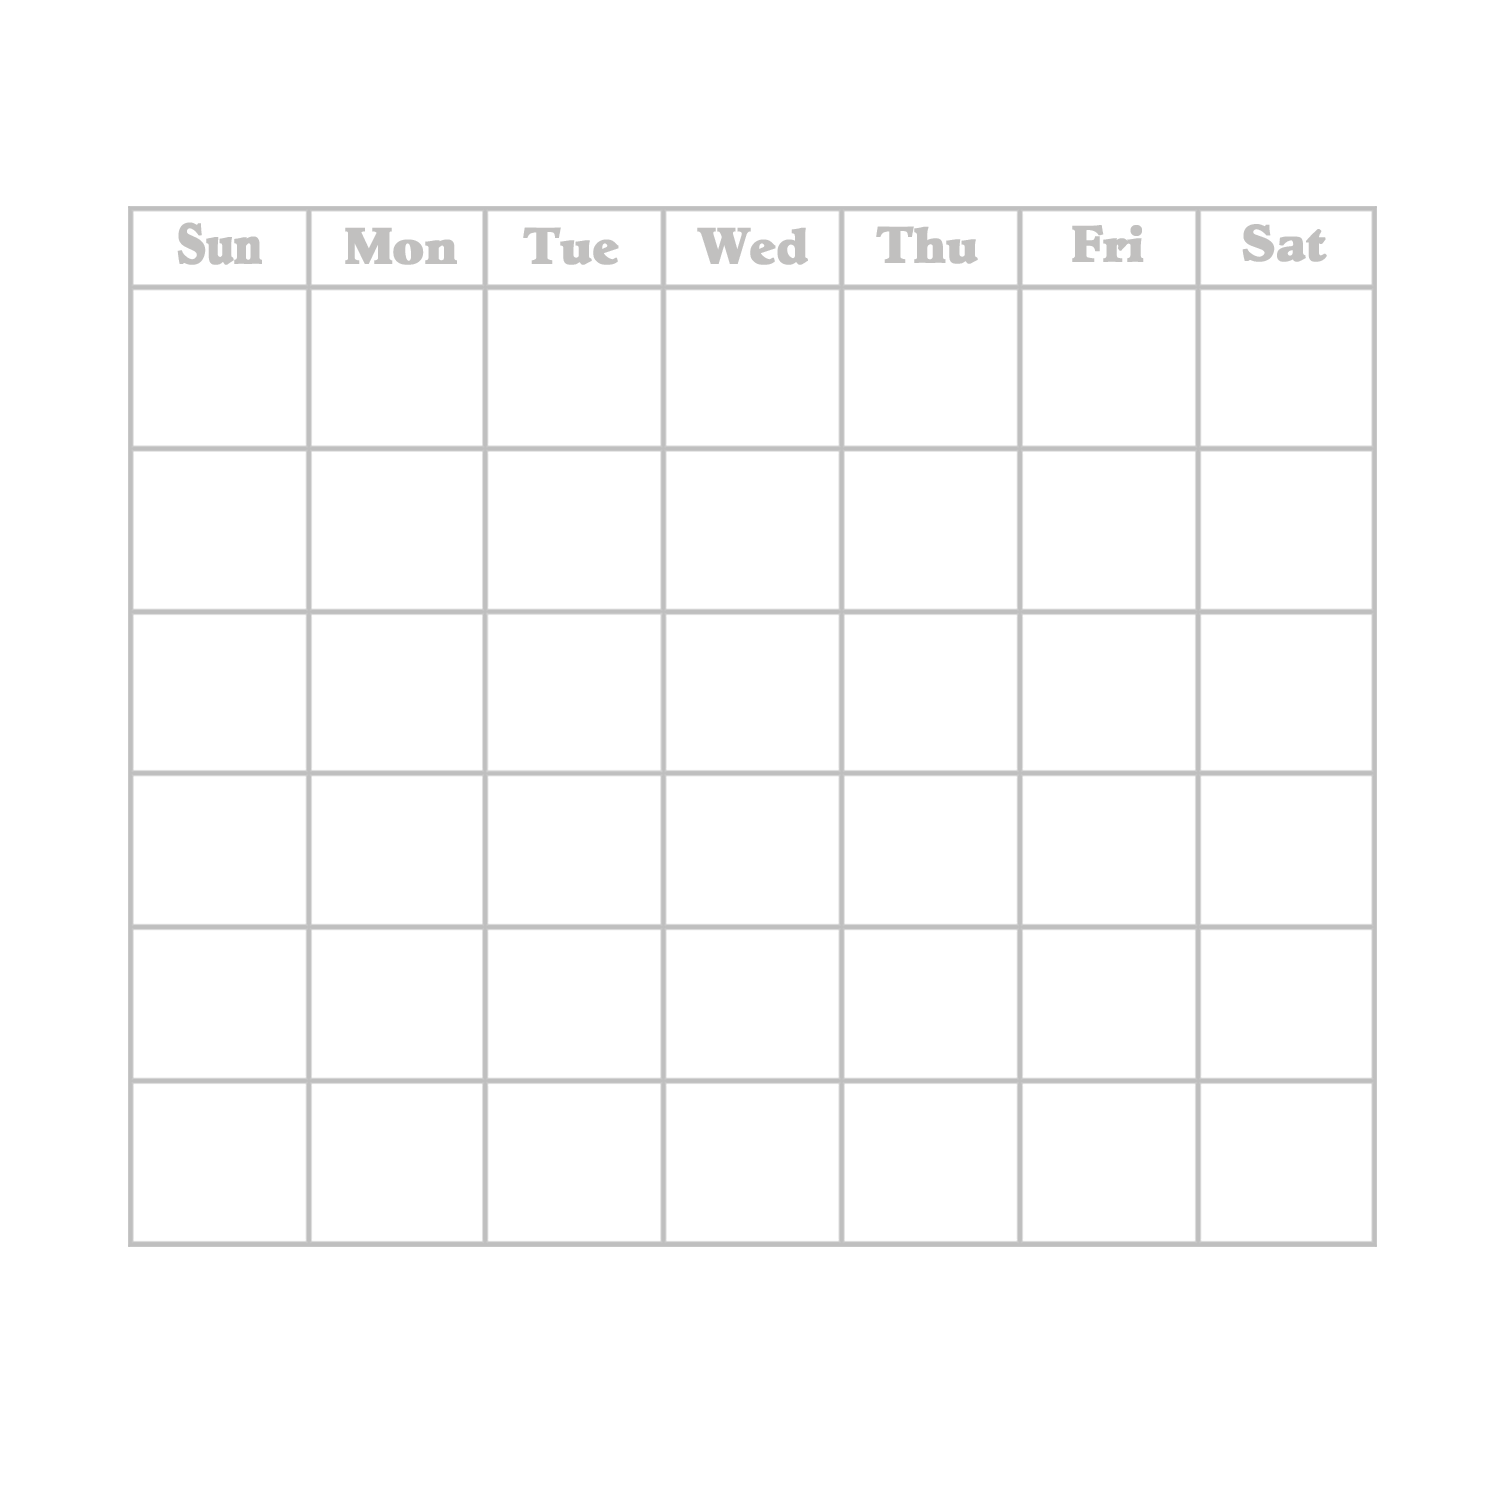 ... , Download the white calendar grid here download the black calendar